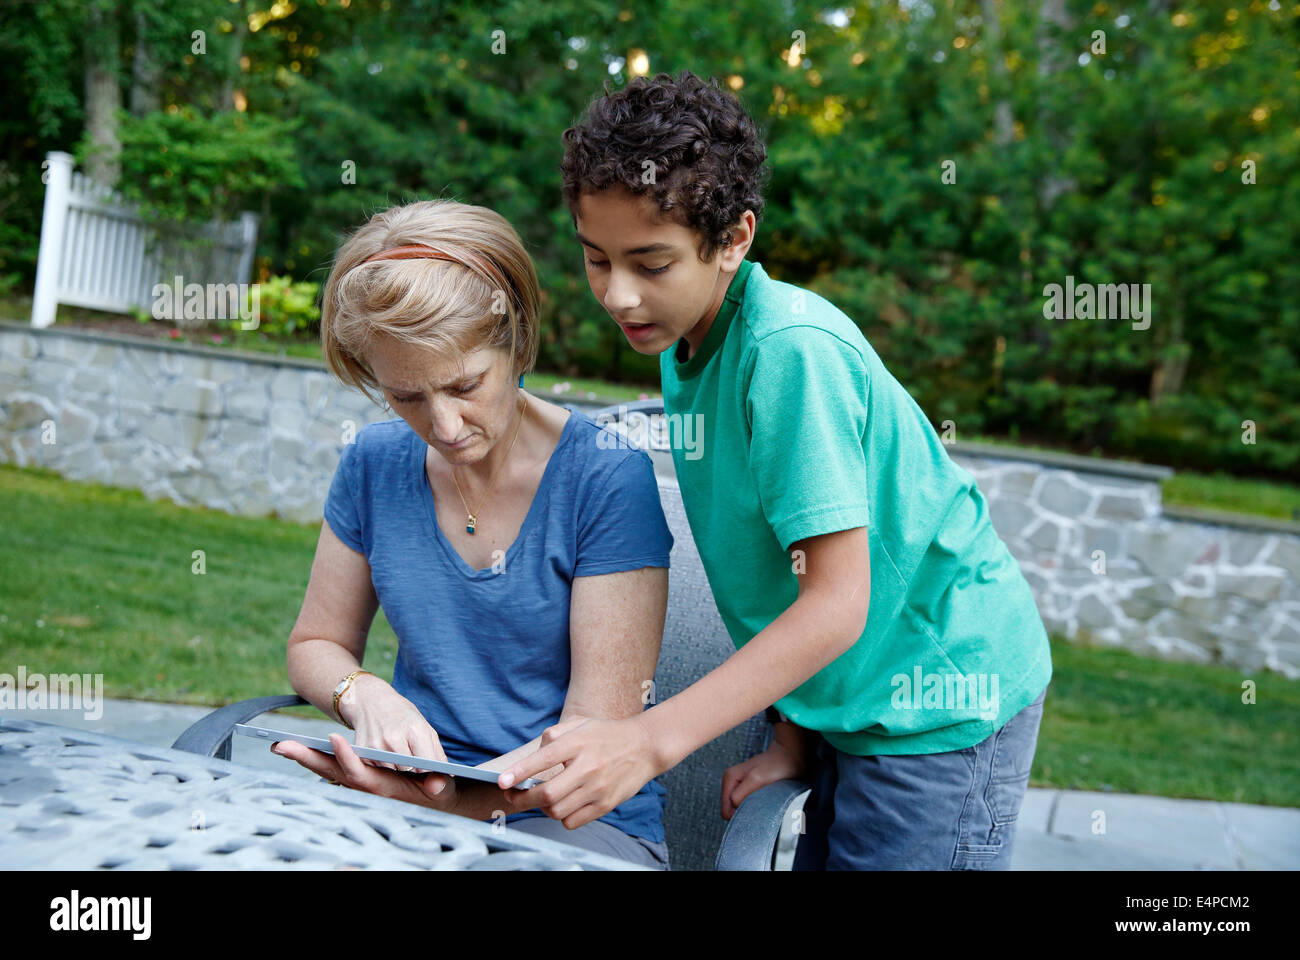 A boy shows his mother how to use a tablet computer - Stock Image